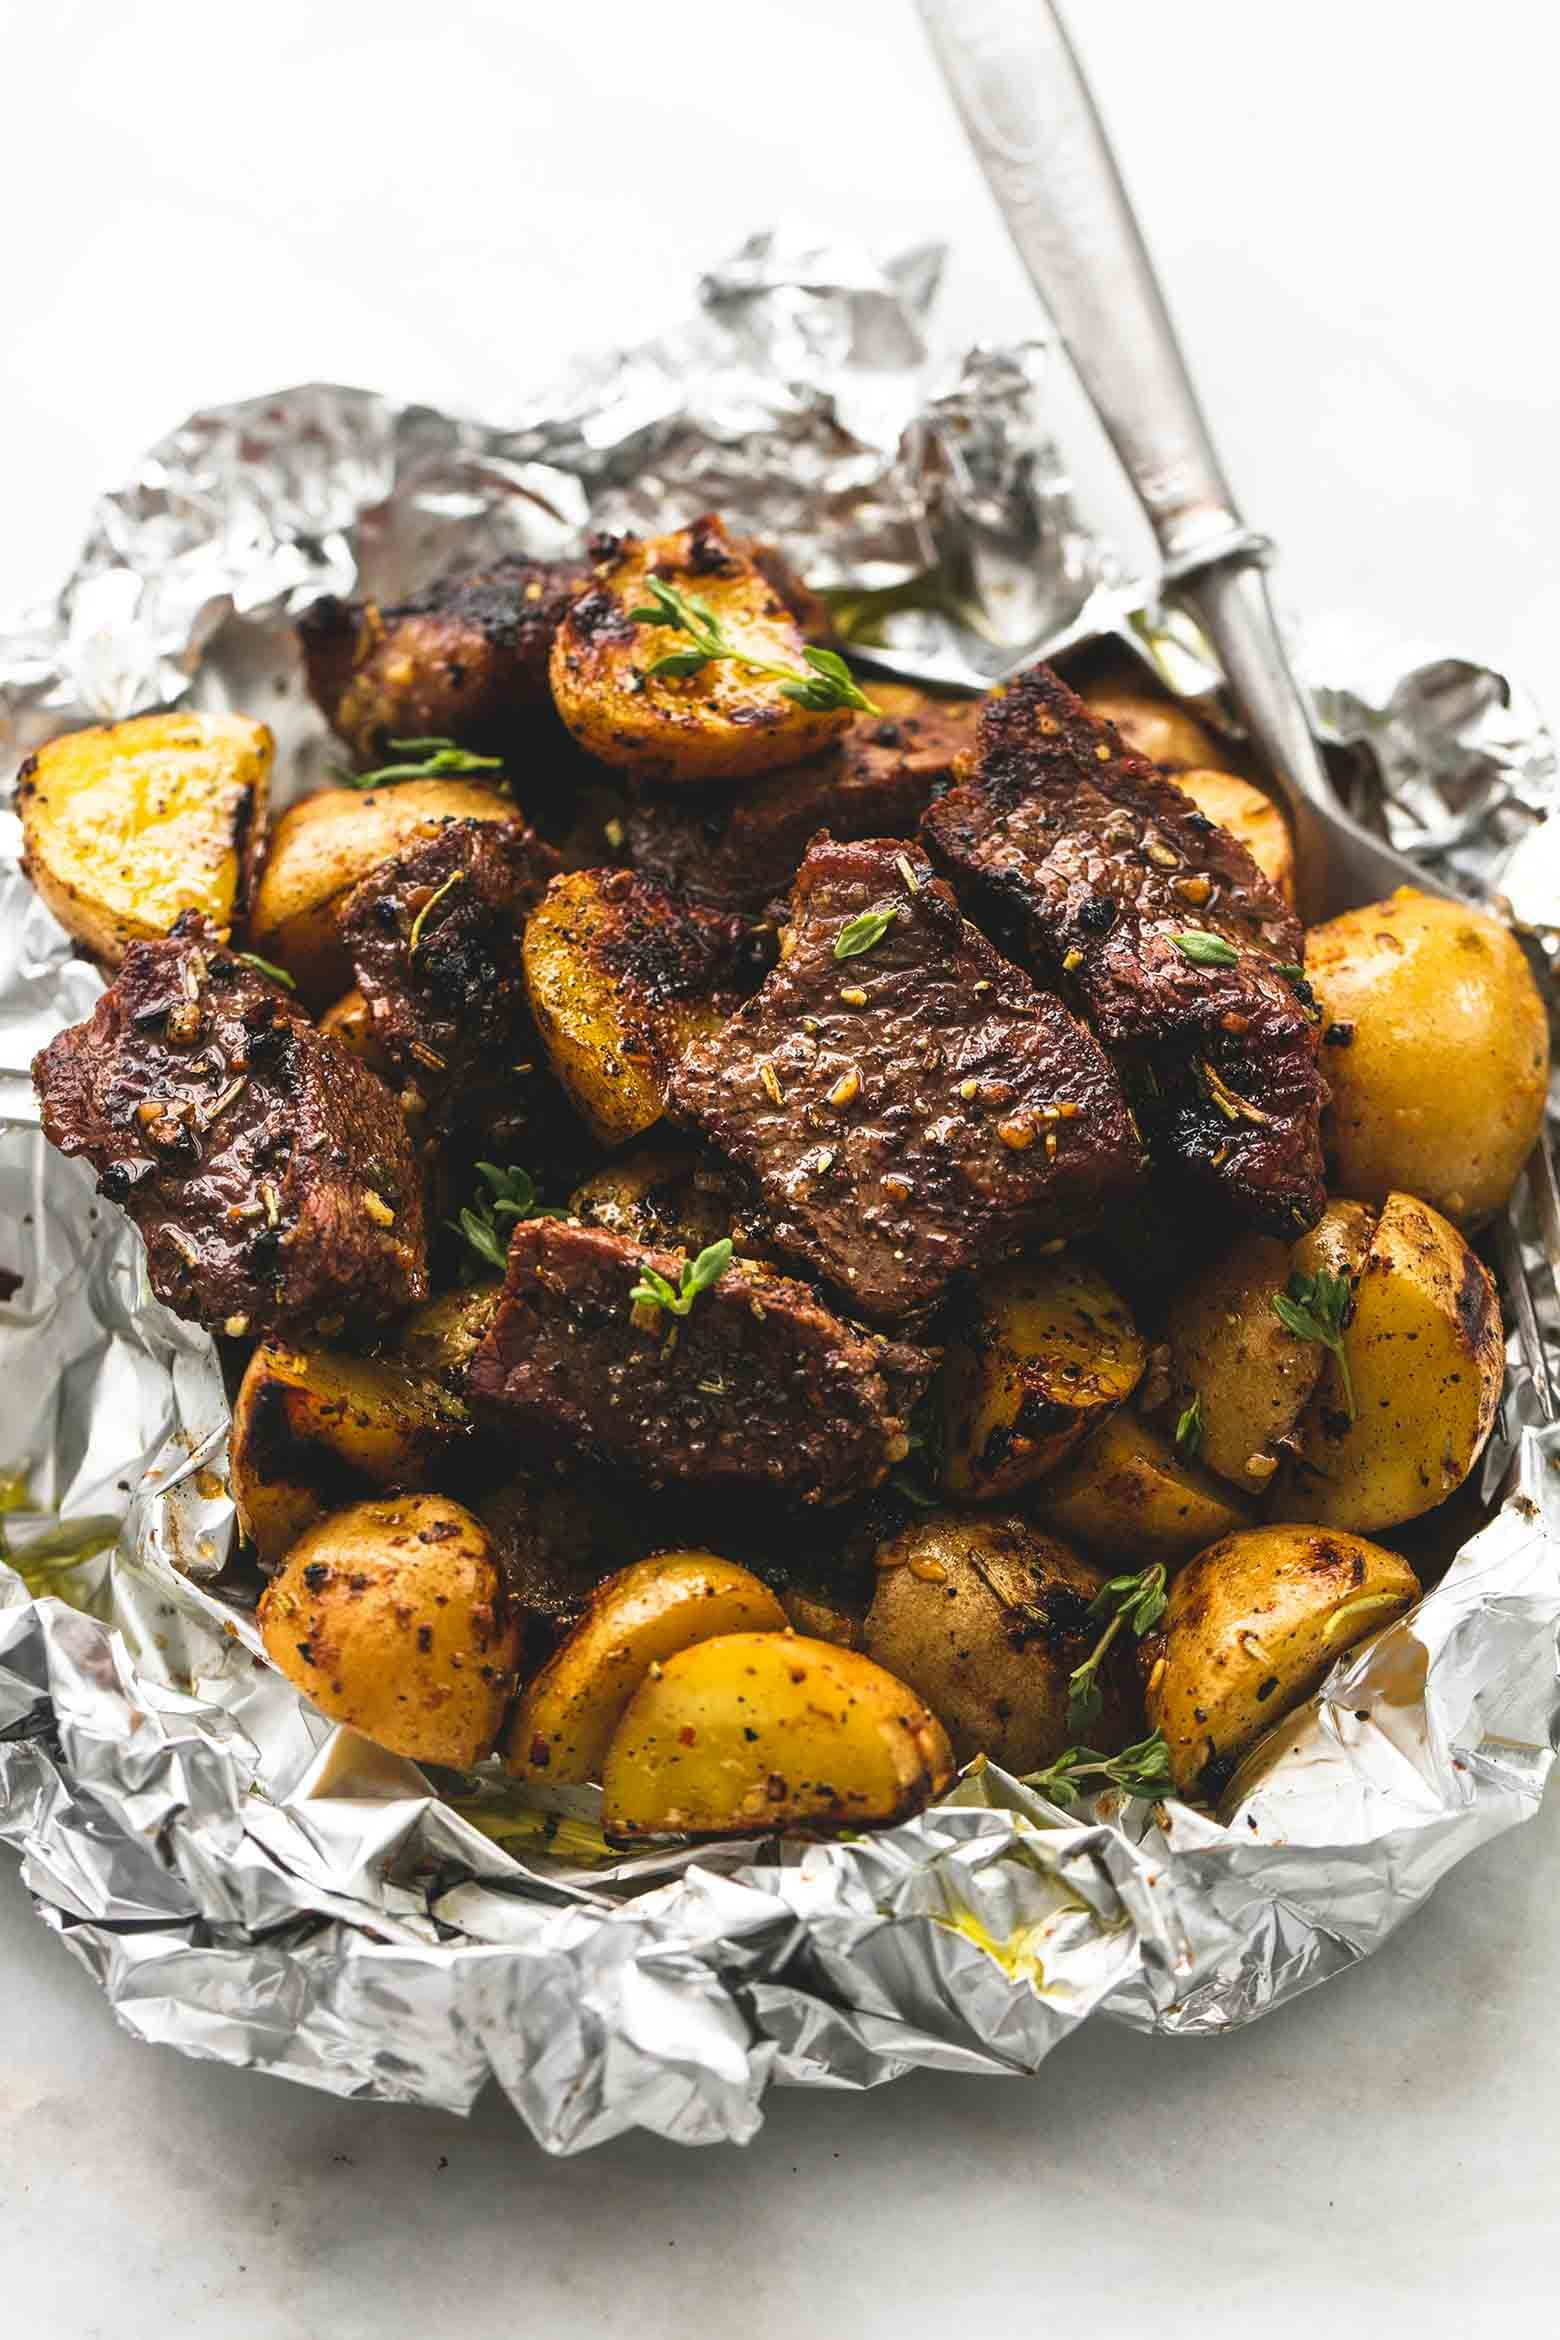 Juicy and savory seasoned garlic steak and potato foil packs are the perfect baked or grilled 30 minute hearty, healthy meal.  I am going to try 350